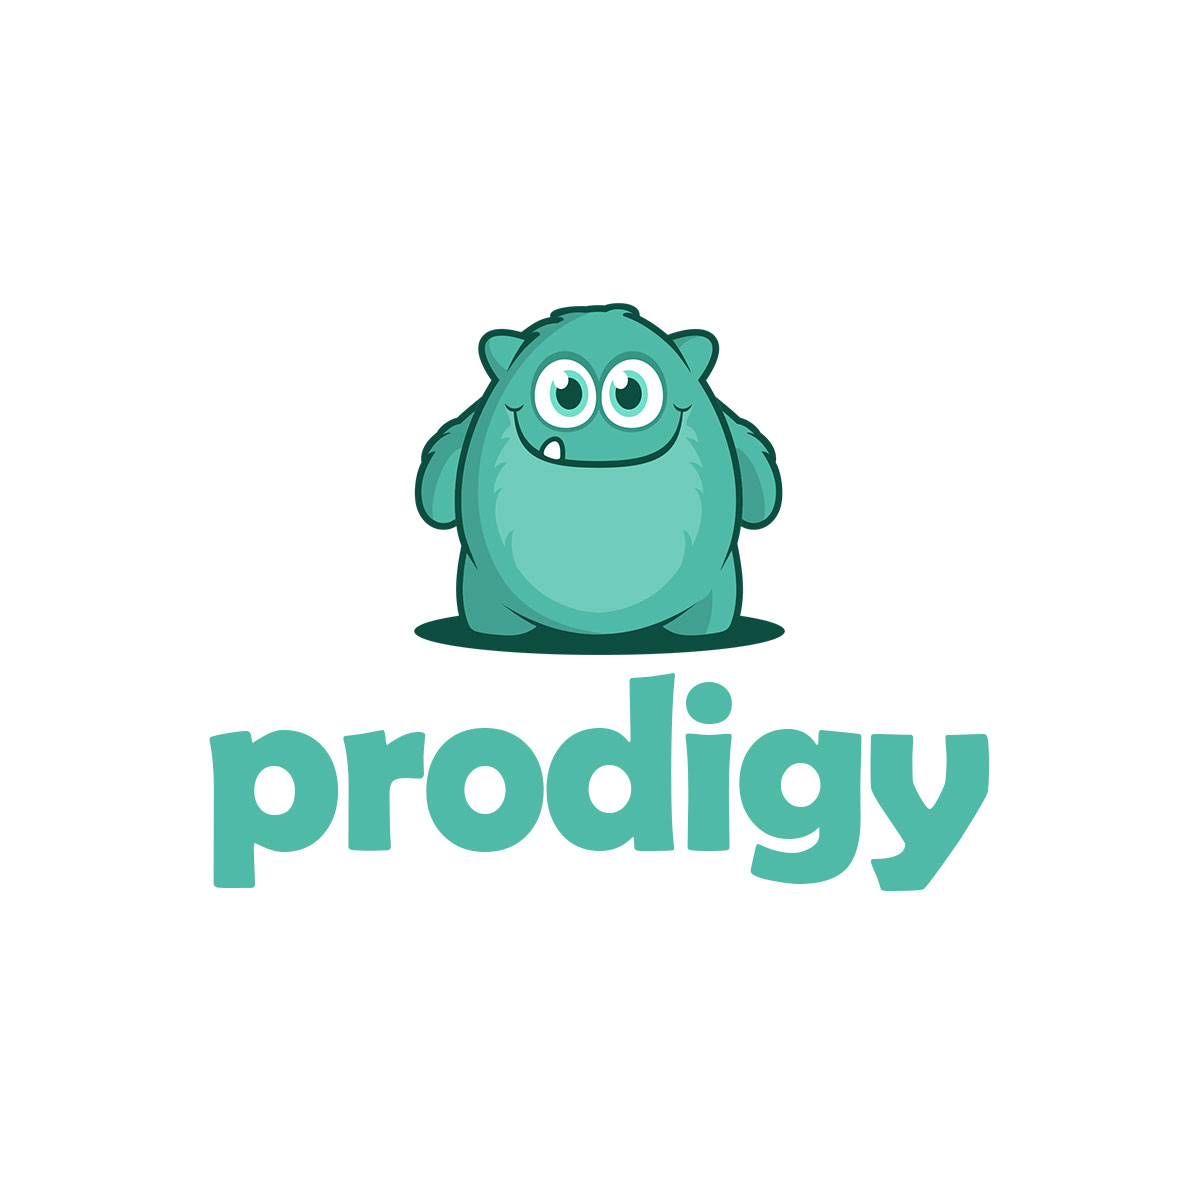 Link to prodigy website